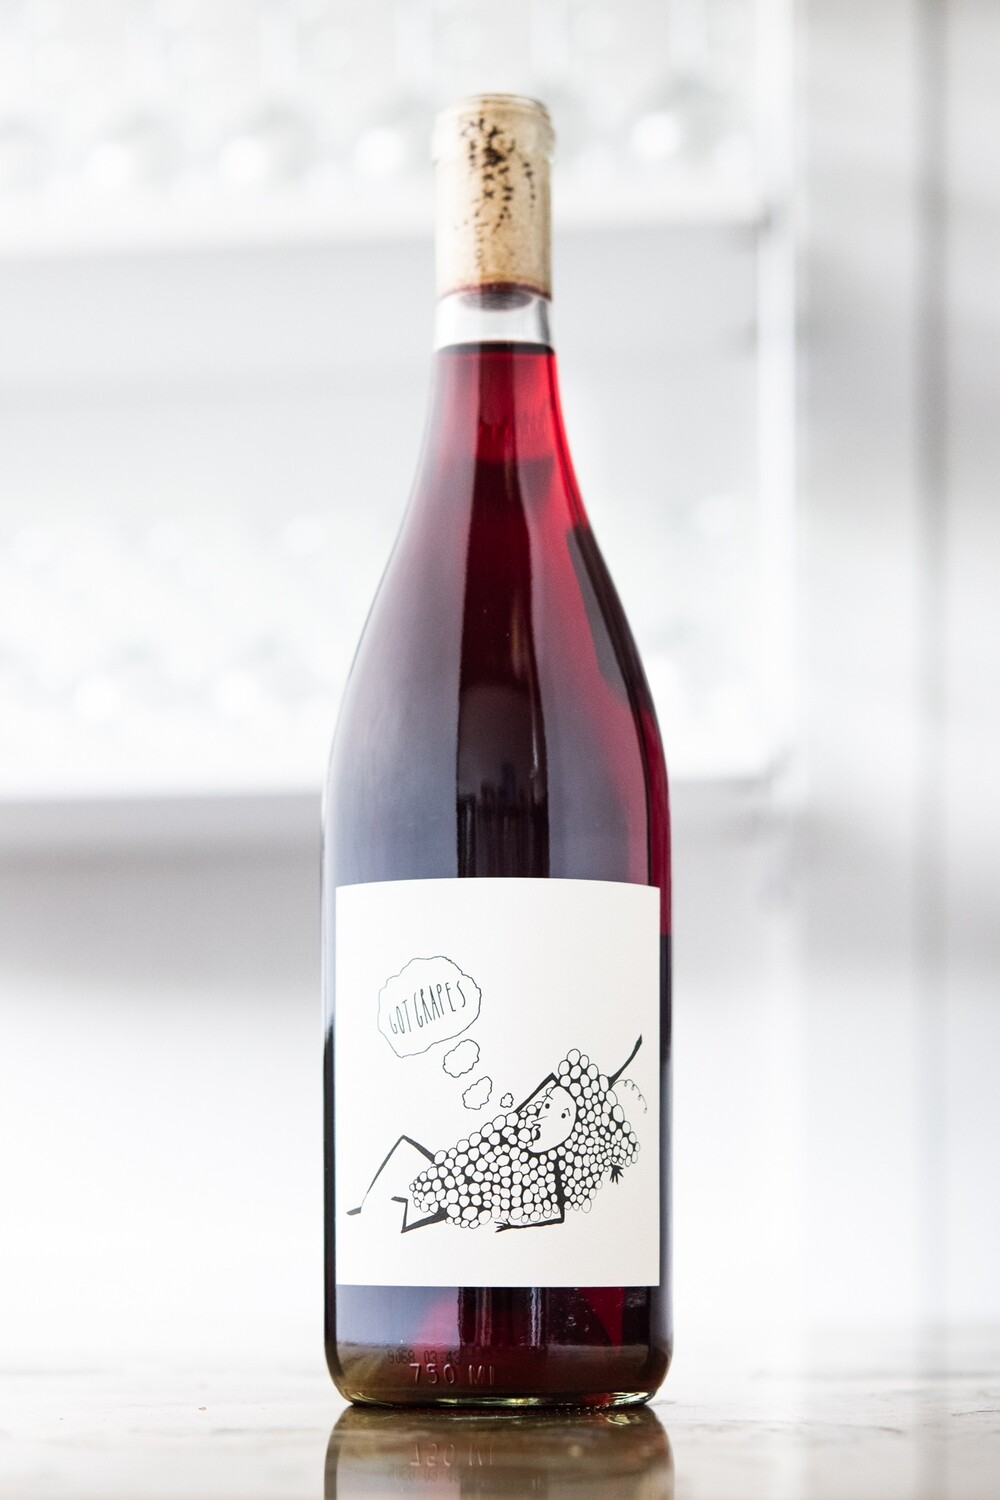 Broc Cellars 'Got Grapes' Valdiguié (2018)